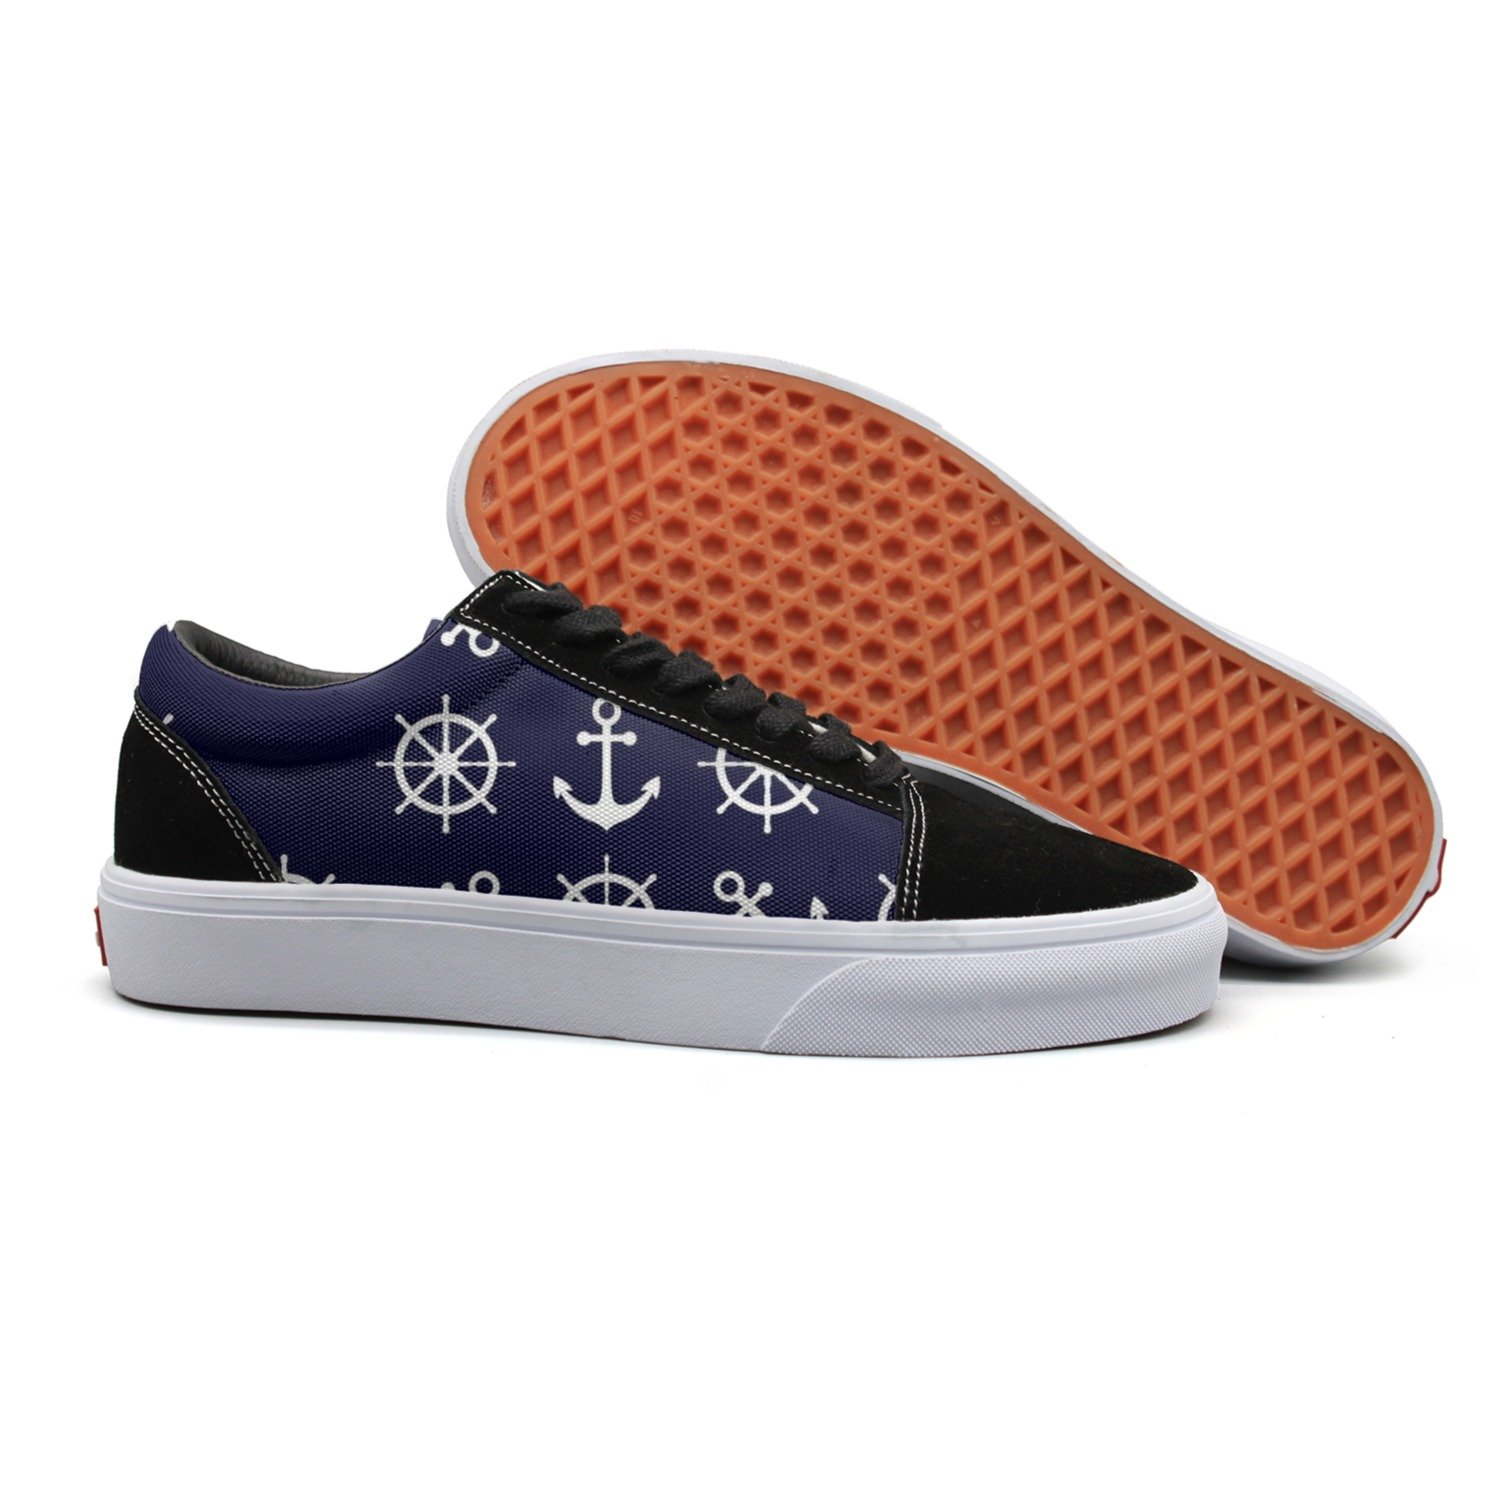 VCERTHDF Print Trendy Marine Anchors Navy Low Top Canvas Sneakers